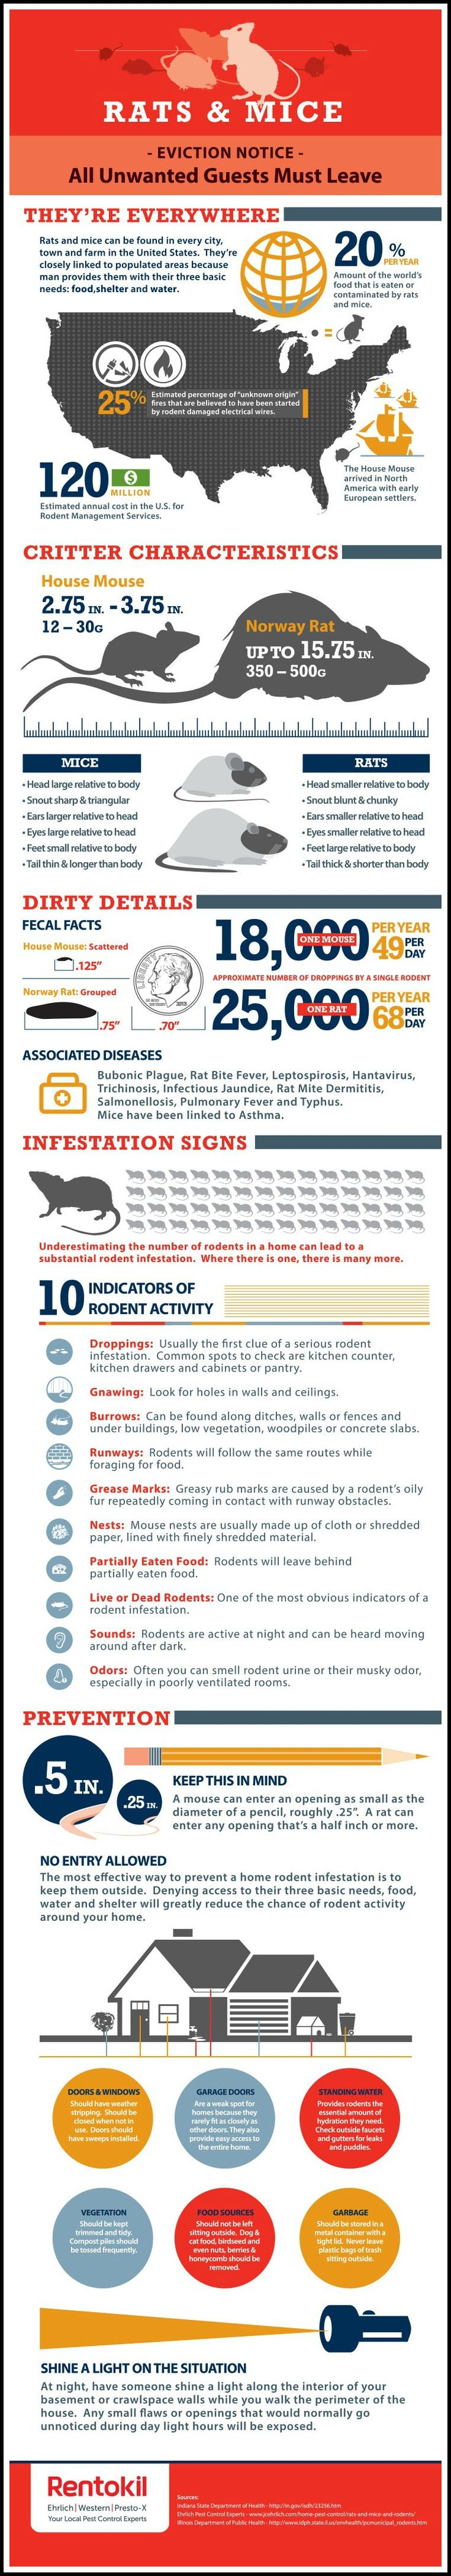 Rats And Mice Infographic Pest Control Termite Control Mouse Rat